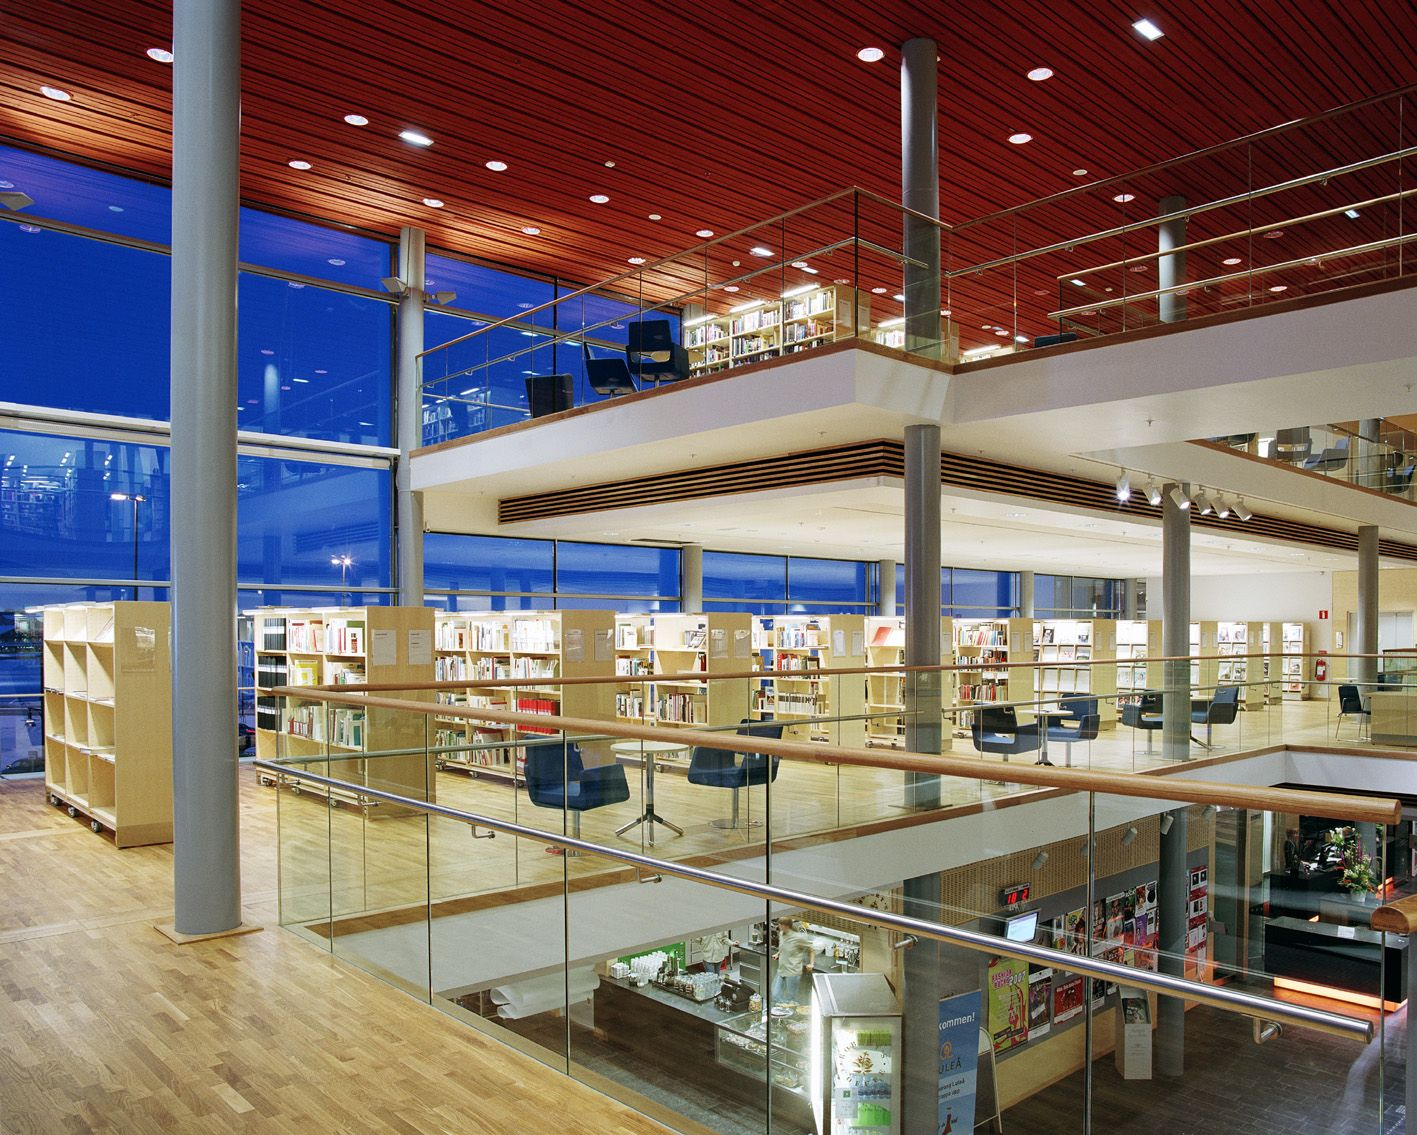 Kulturens hus,stadsbiblioteket, Luleå. Library in Luleå, Sweden. Isn't it gorgeous?